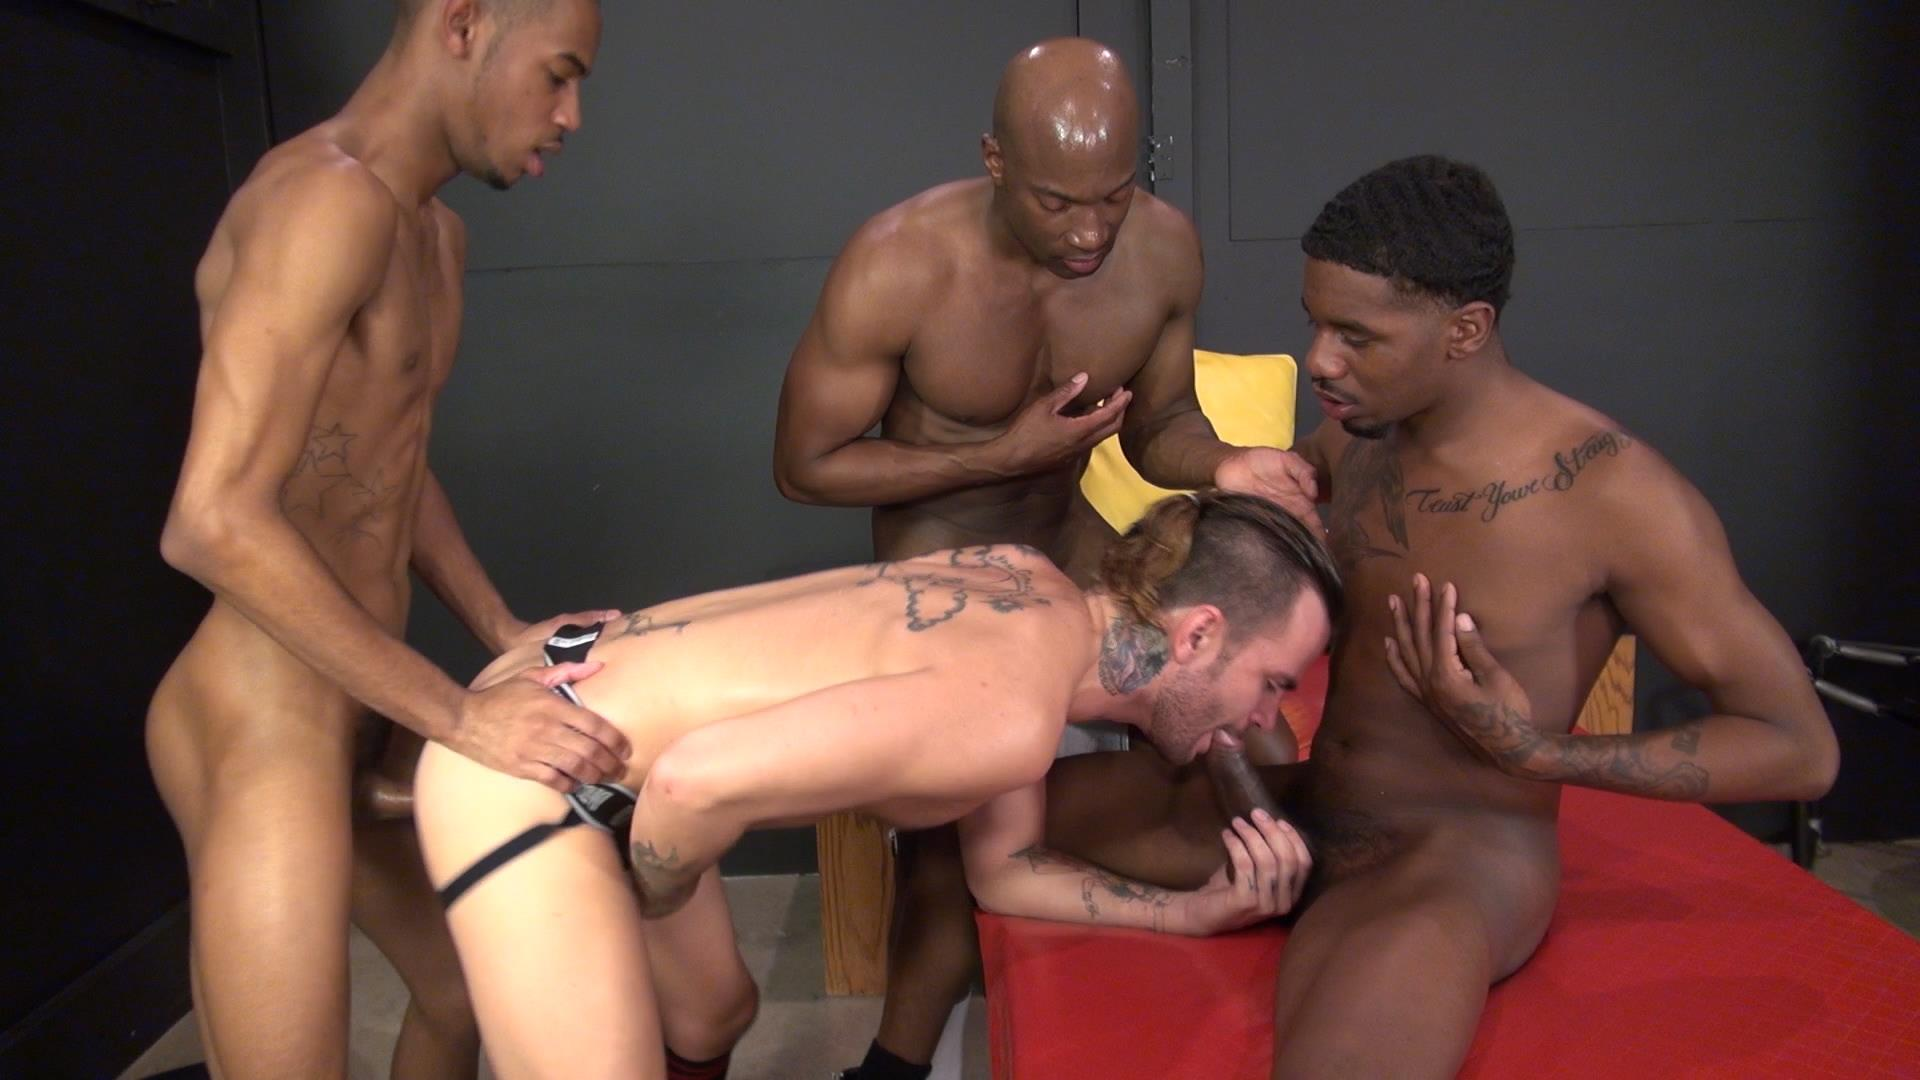 berlin mom and sons fuck bareback xxx